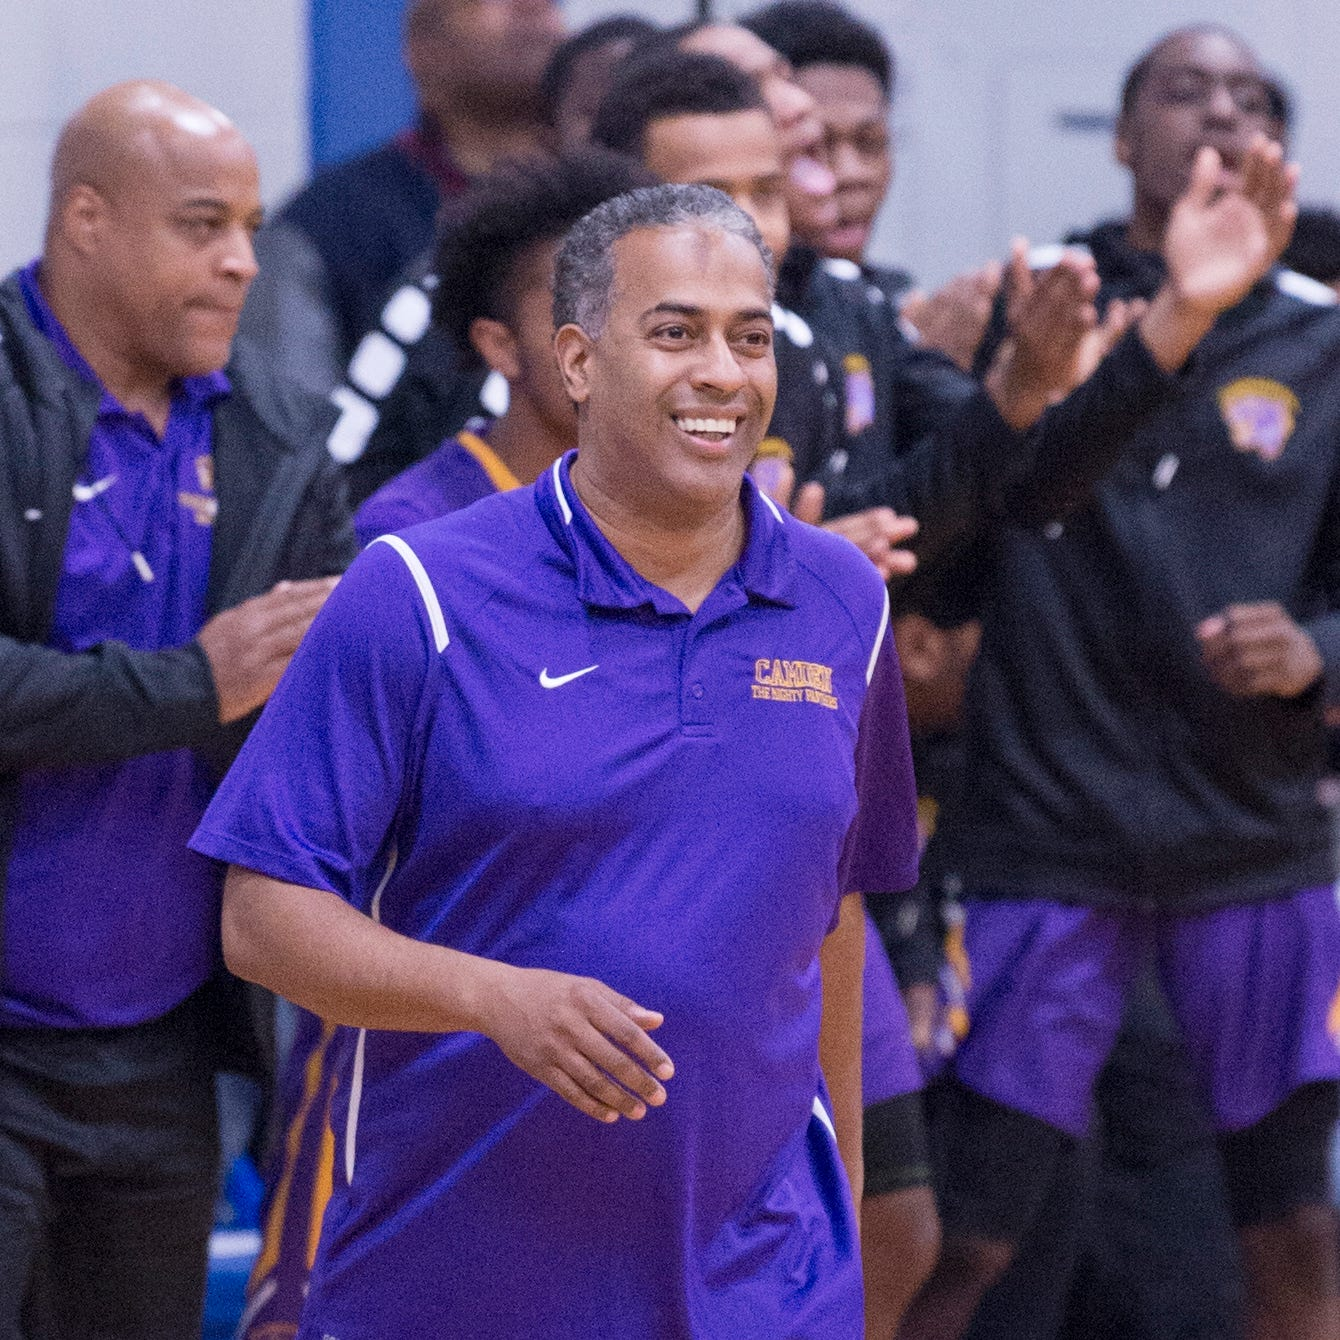 South Jersey basketball: Vic Carstarphen resigns as Camden head coach